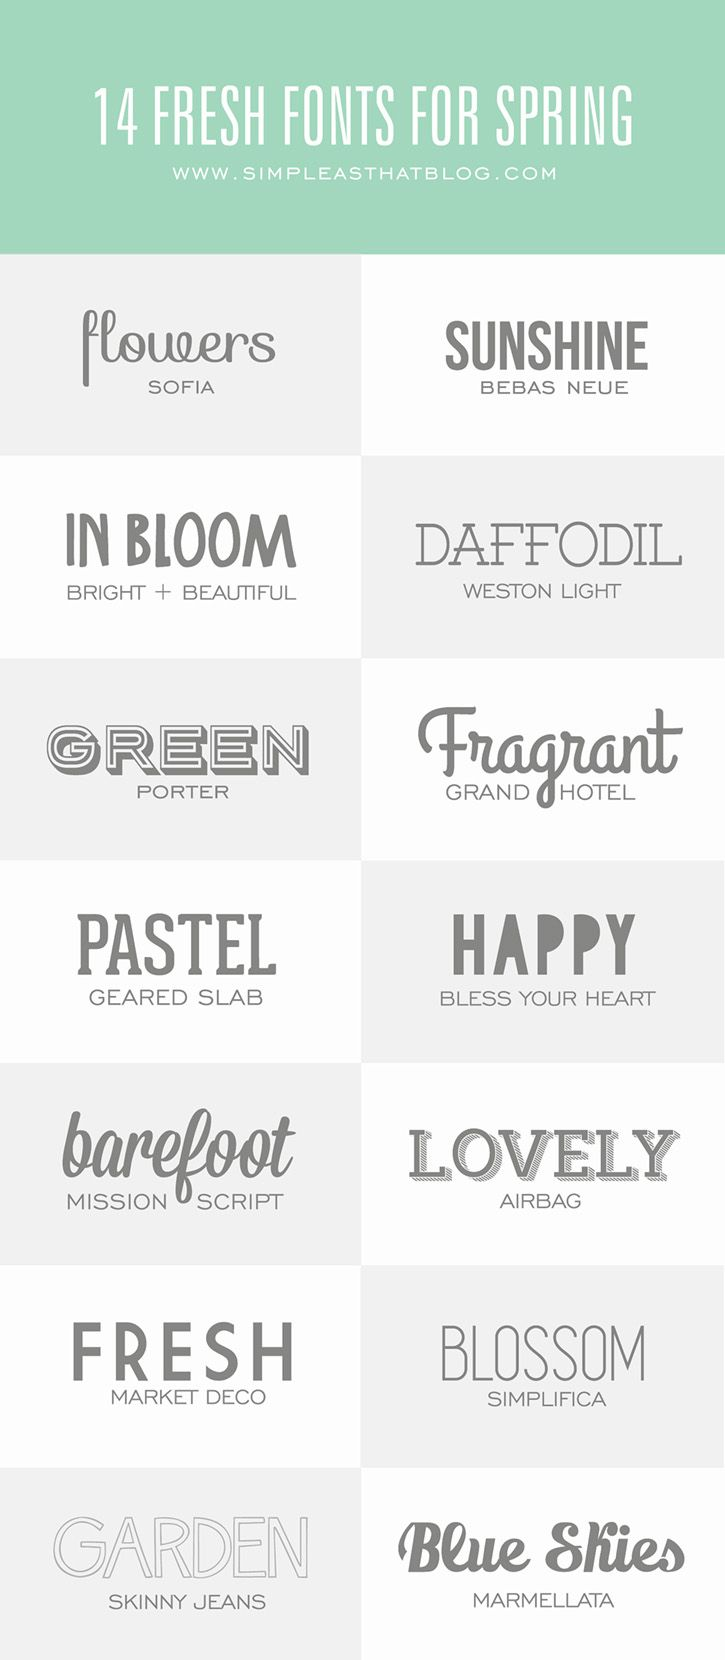 14 Fresh Fonts for Spring | #font #typography #tipografia #fuente #design #diseño #spring #printemps #primavera #fresh